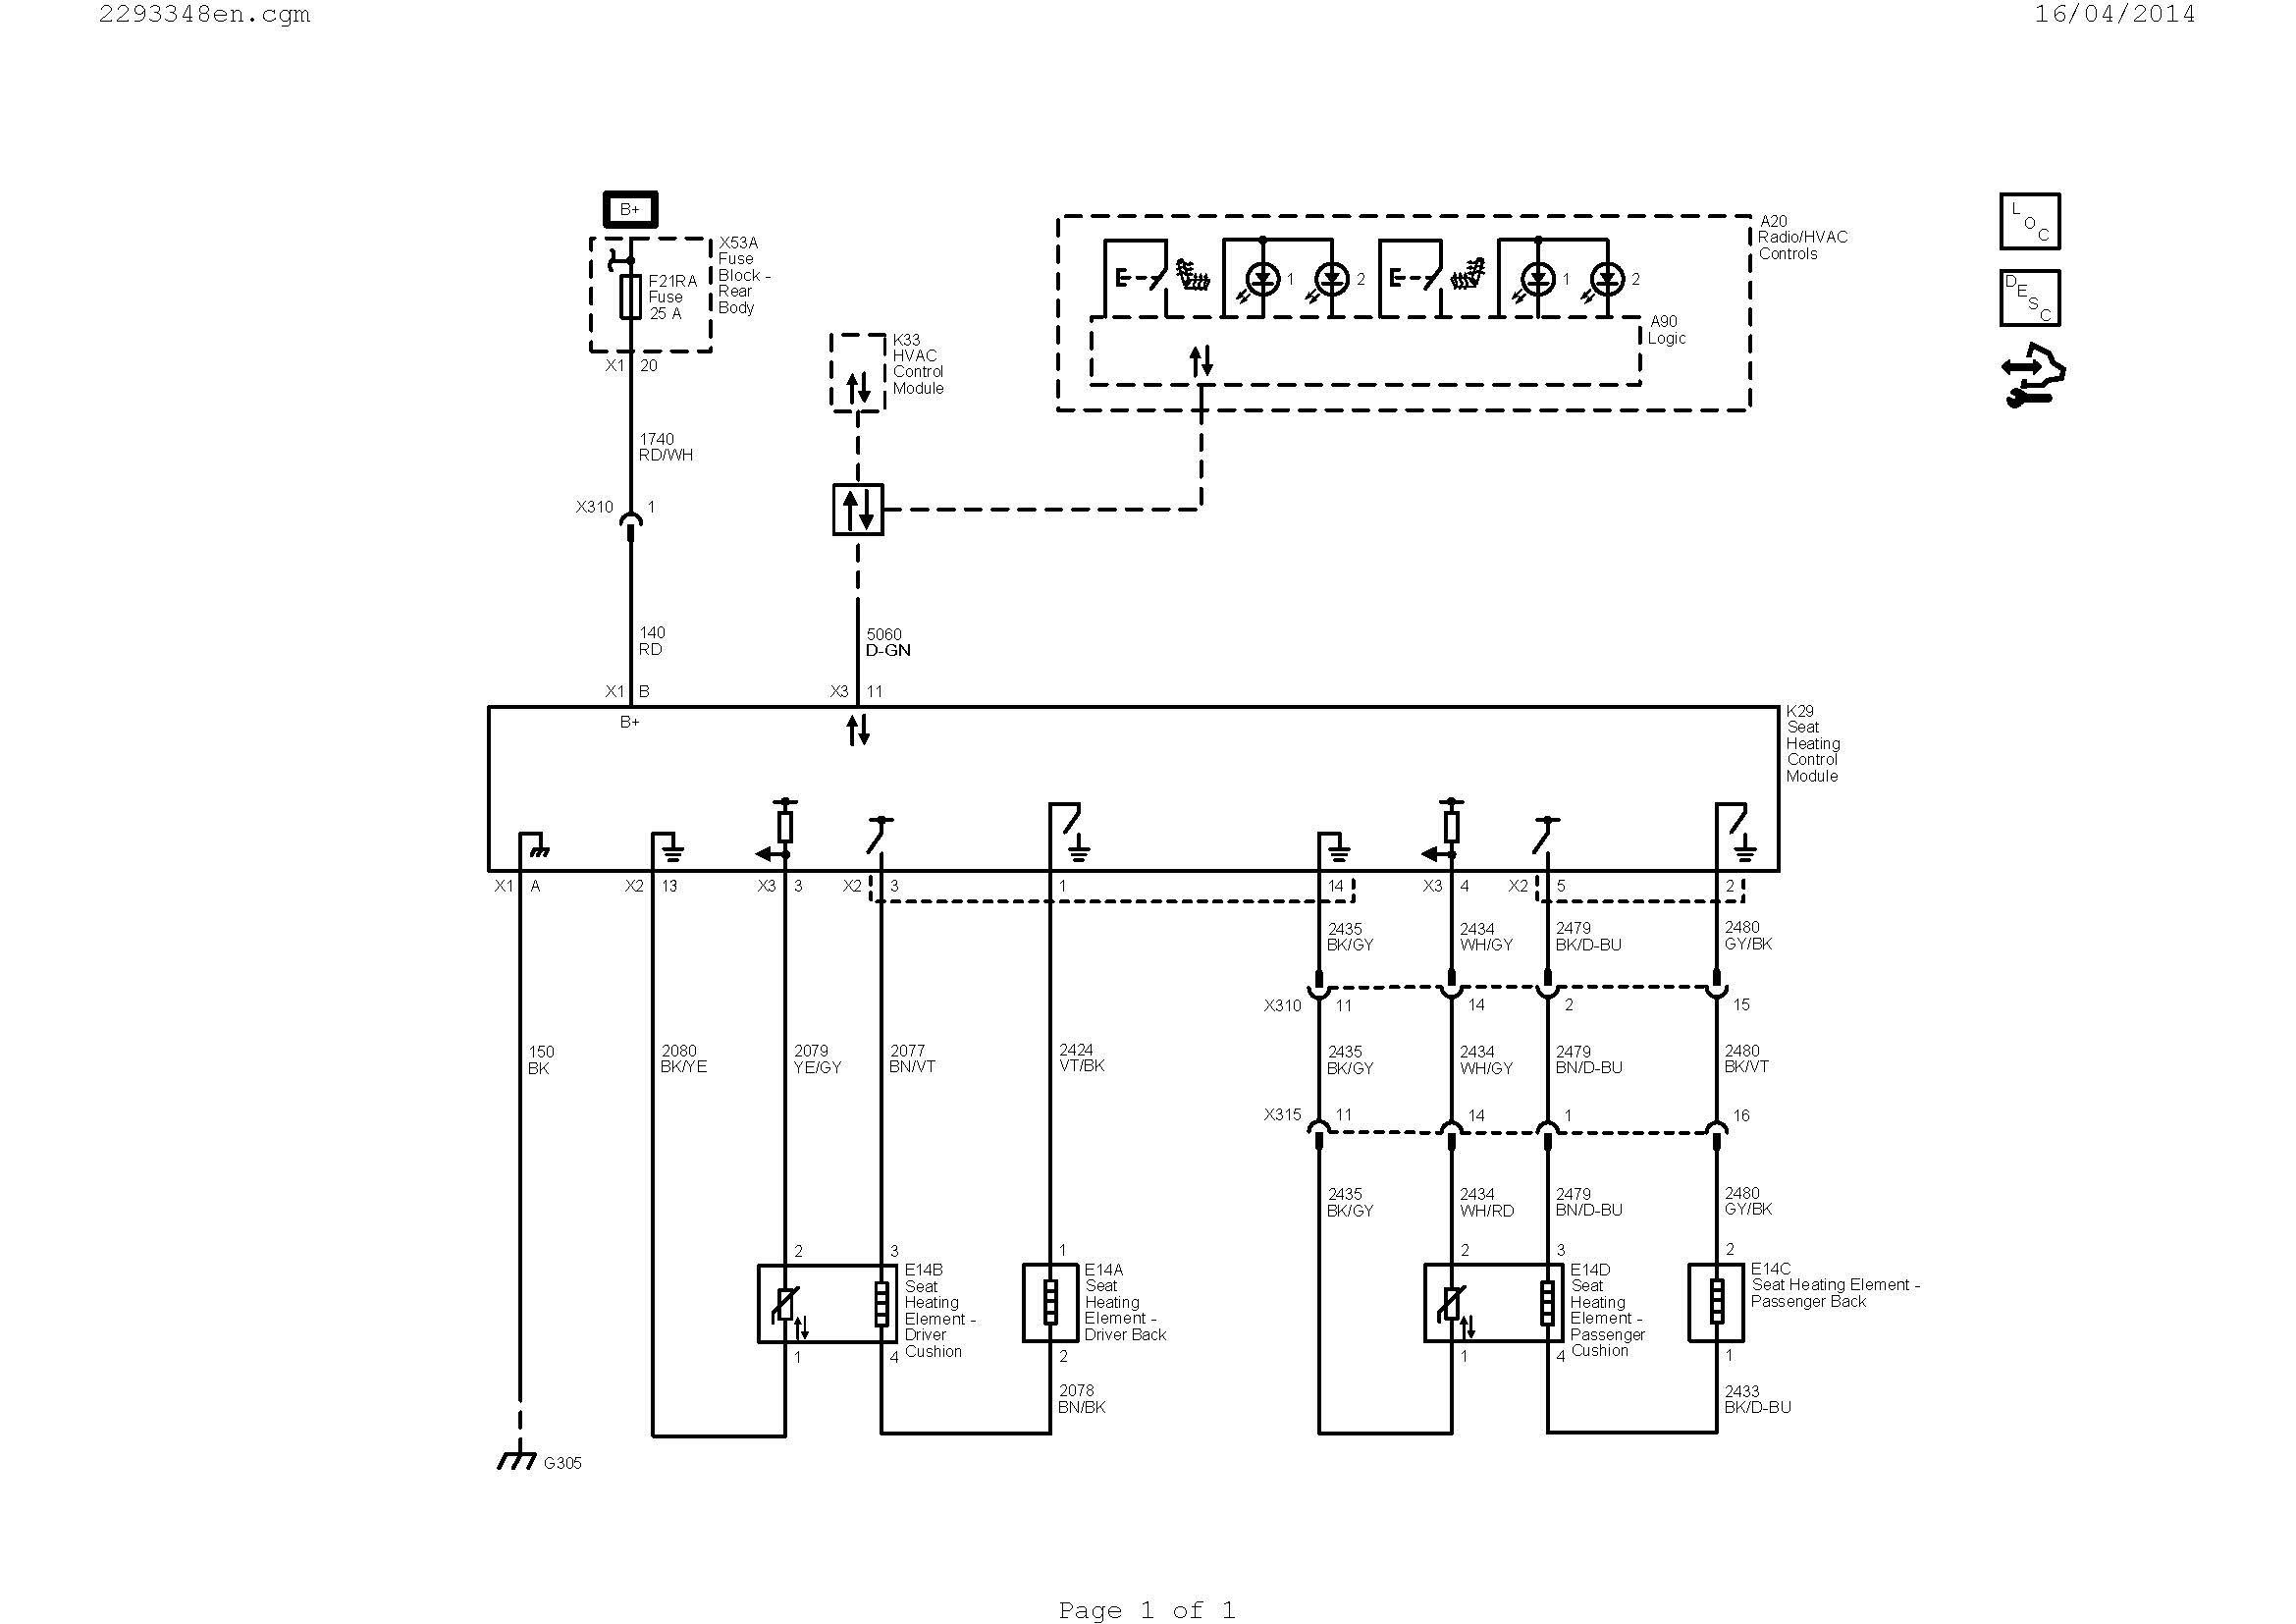 thermostat wiring diagram Collection-Wiring A Ac Thermostat Diagram New Wiring Diagram Ac Valid Hvac Diagram Best Hvac Diagram 0d – Wire 15-g